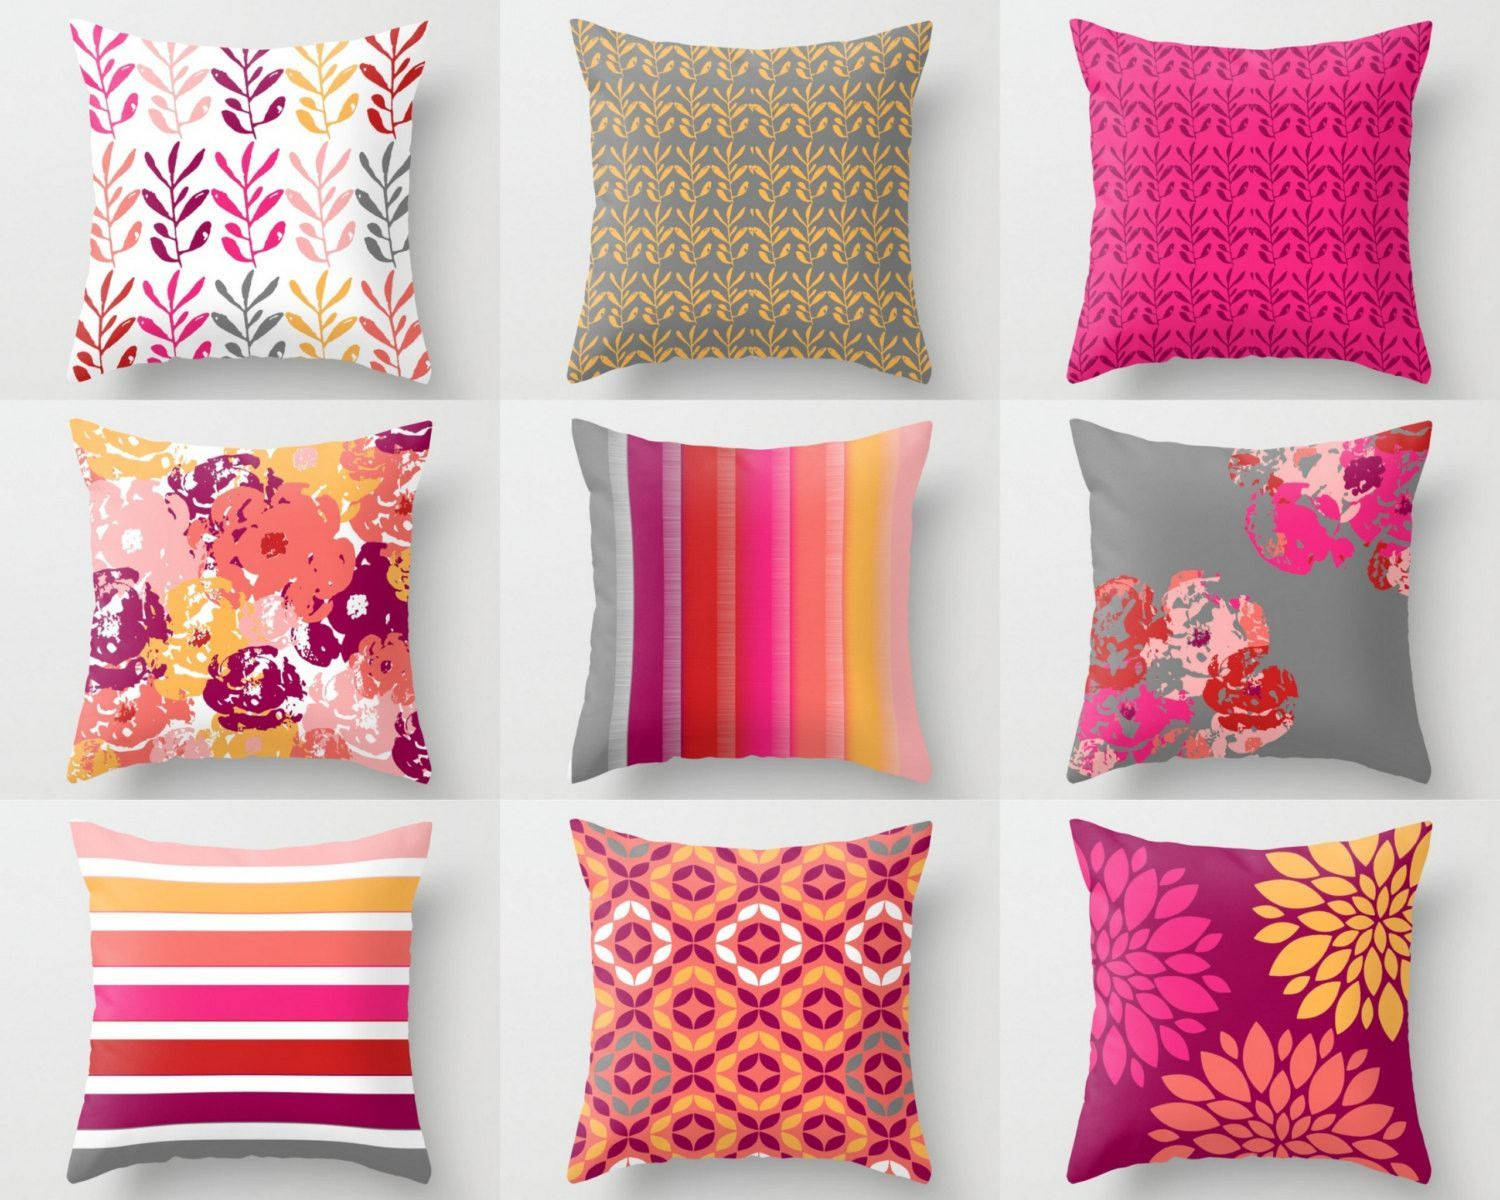 Throw Pillows Pillow Covers Hot Pink Fuchsia Orange Red Grey